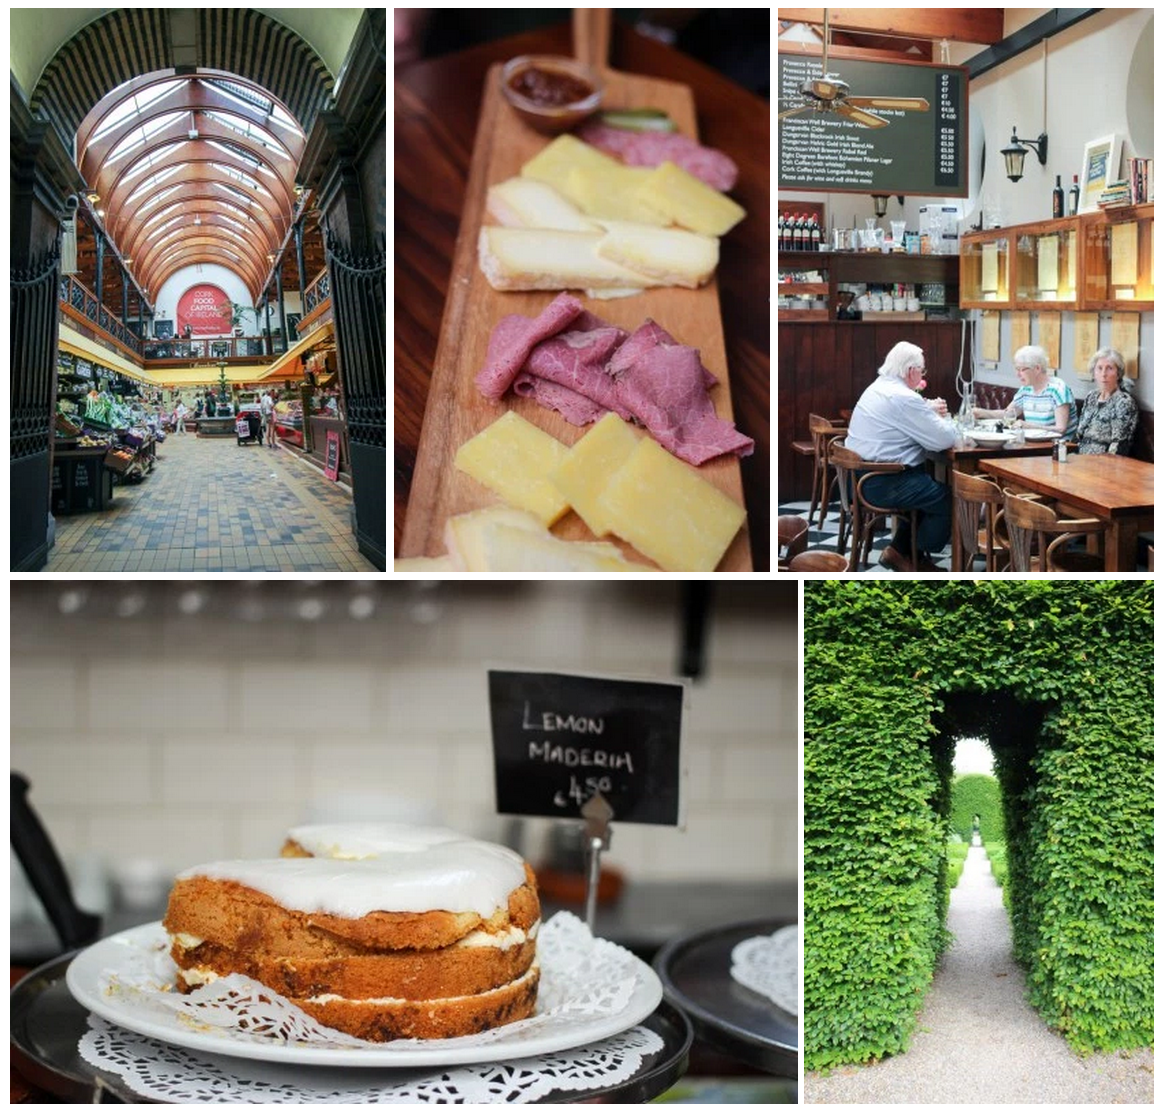 NEW - An Irish city that demands a visit - Where to Eat, Drink and Stay in Cork City (Boy!) https://t.co/srVYb798Nh https://t.co/uTNWXDX5lH